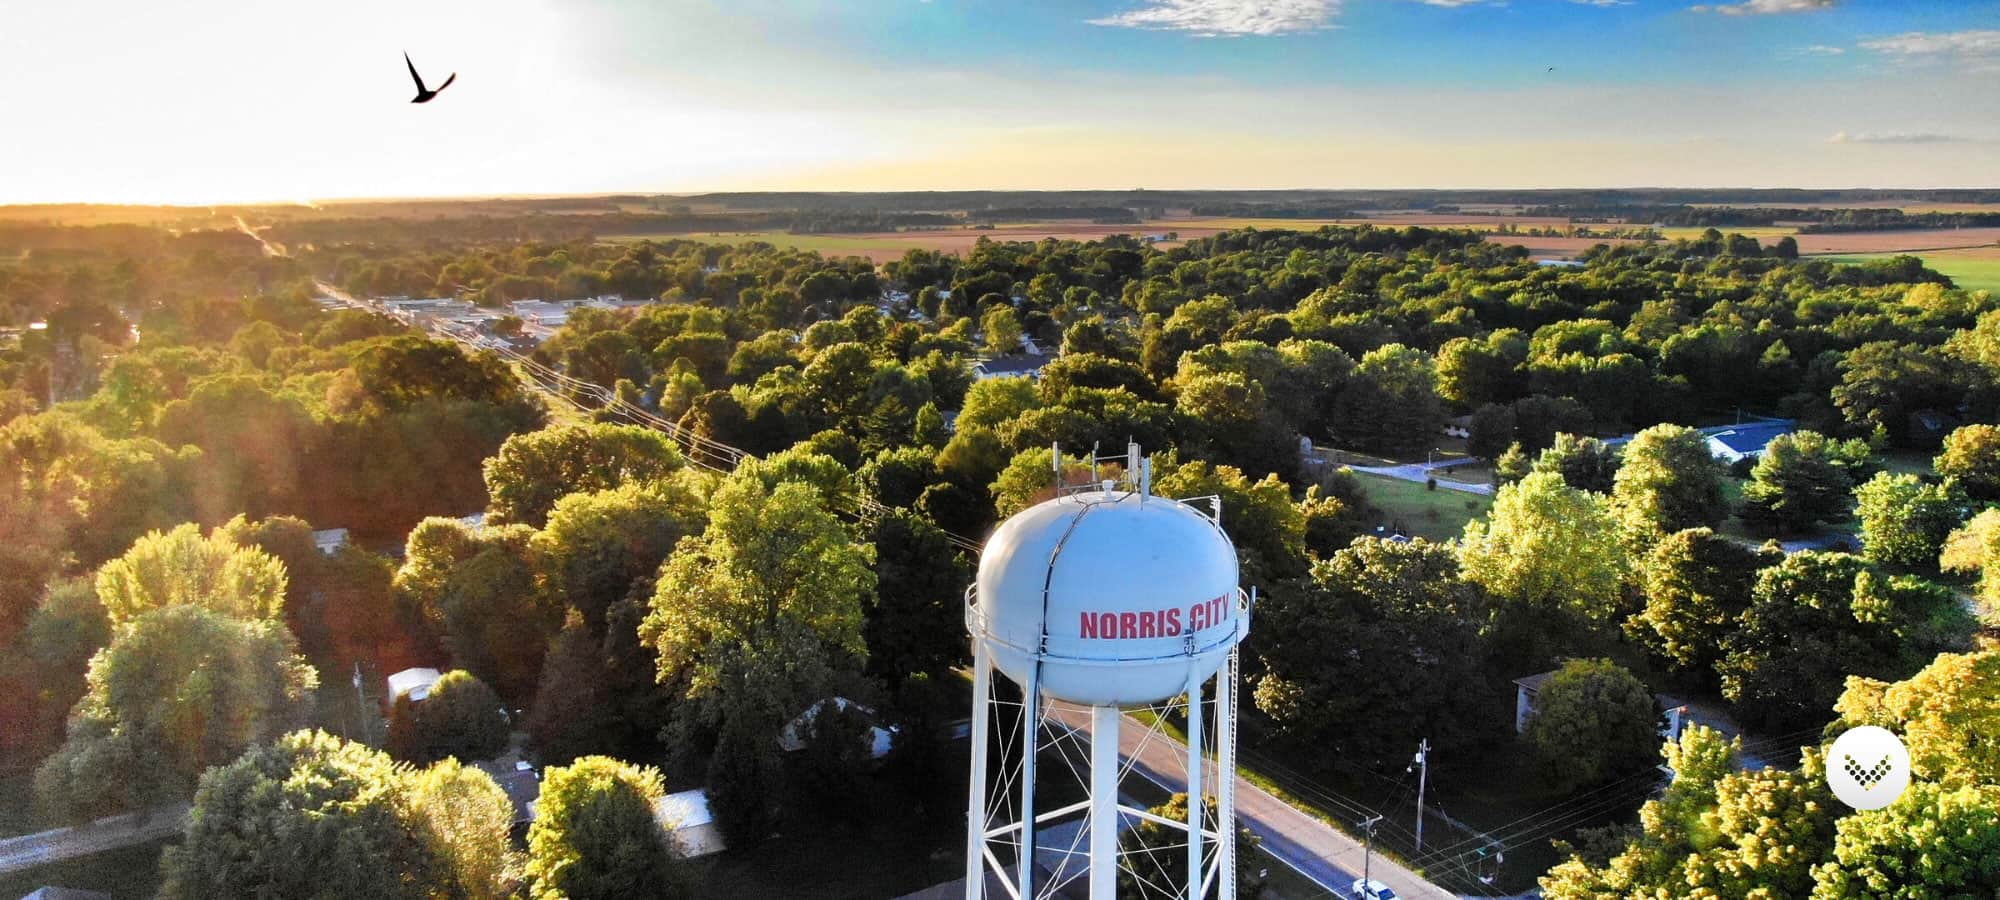 Norris City water tower situated among trees from an aerial perspective.